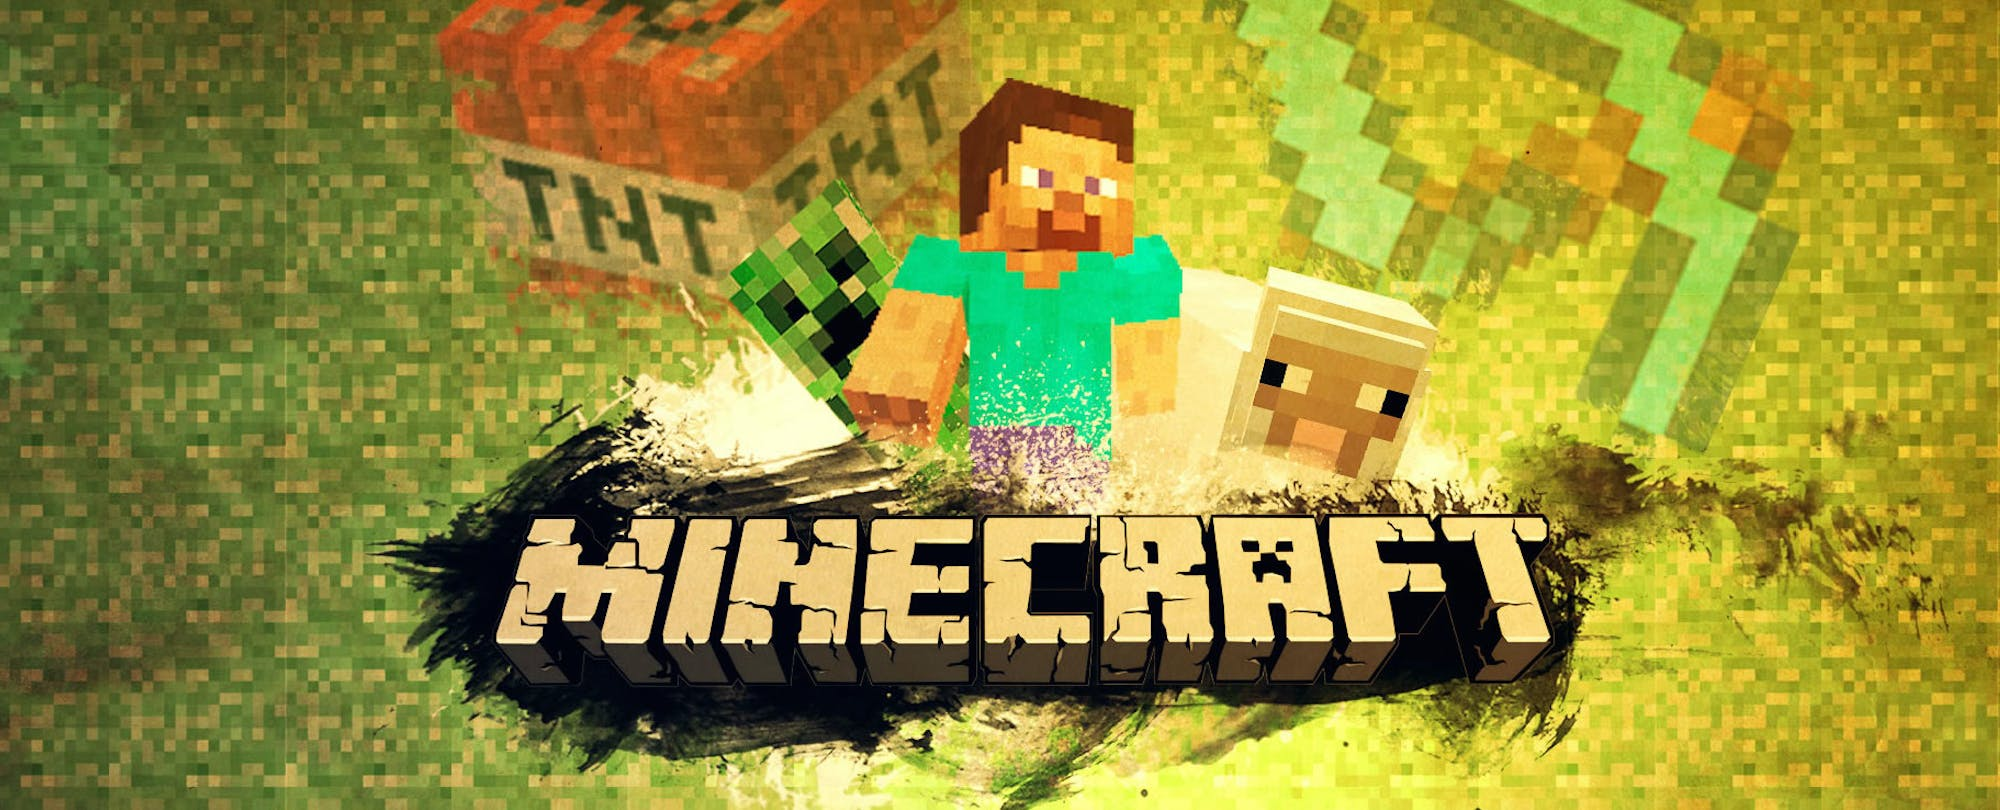 Microsoft Releases 'Minecraft: Educator Edition'